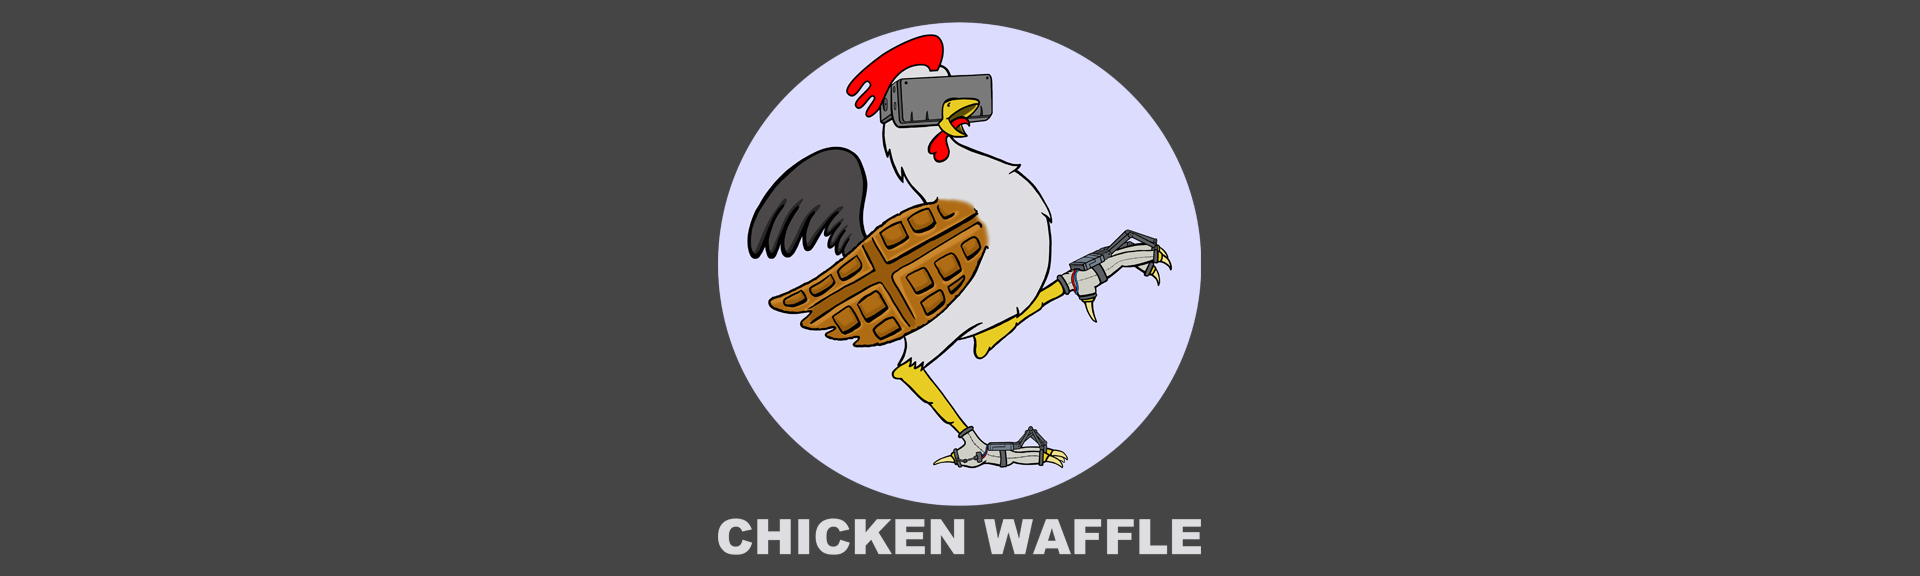 Chickenwaffle logohead banner